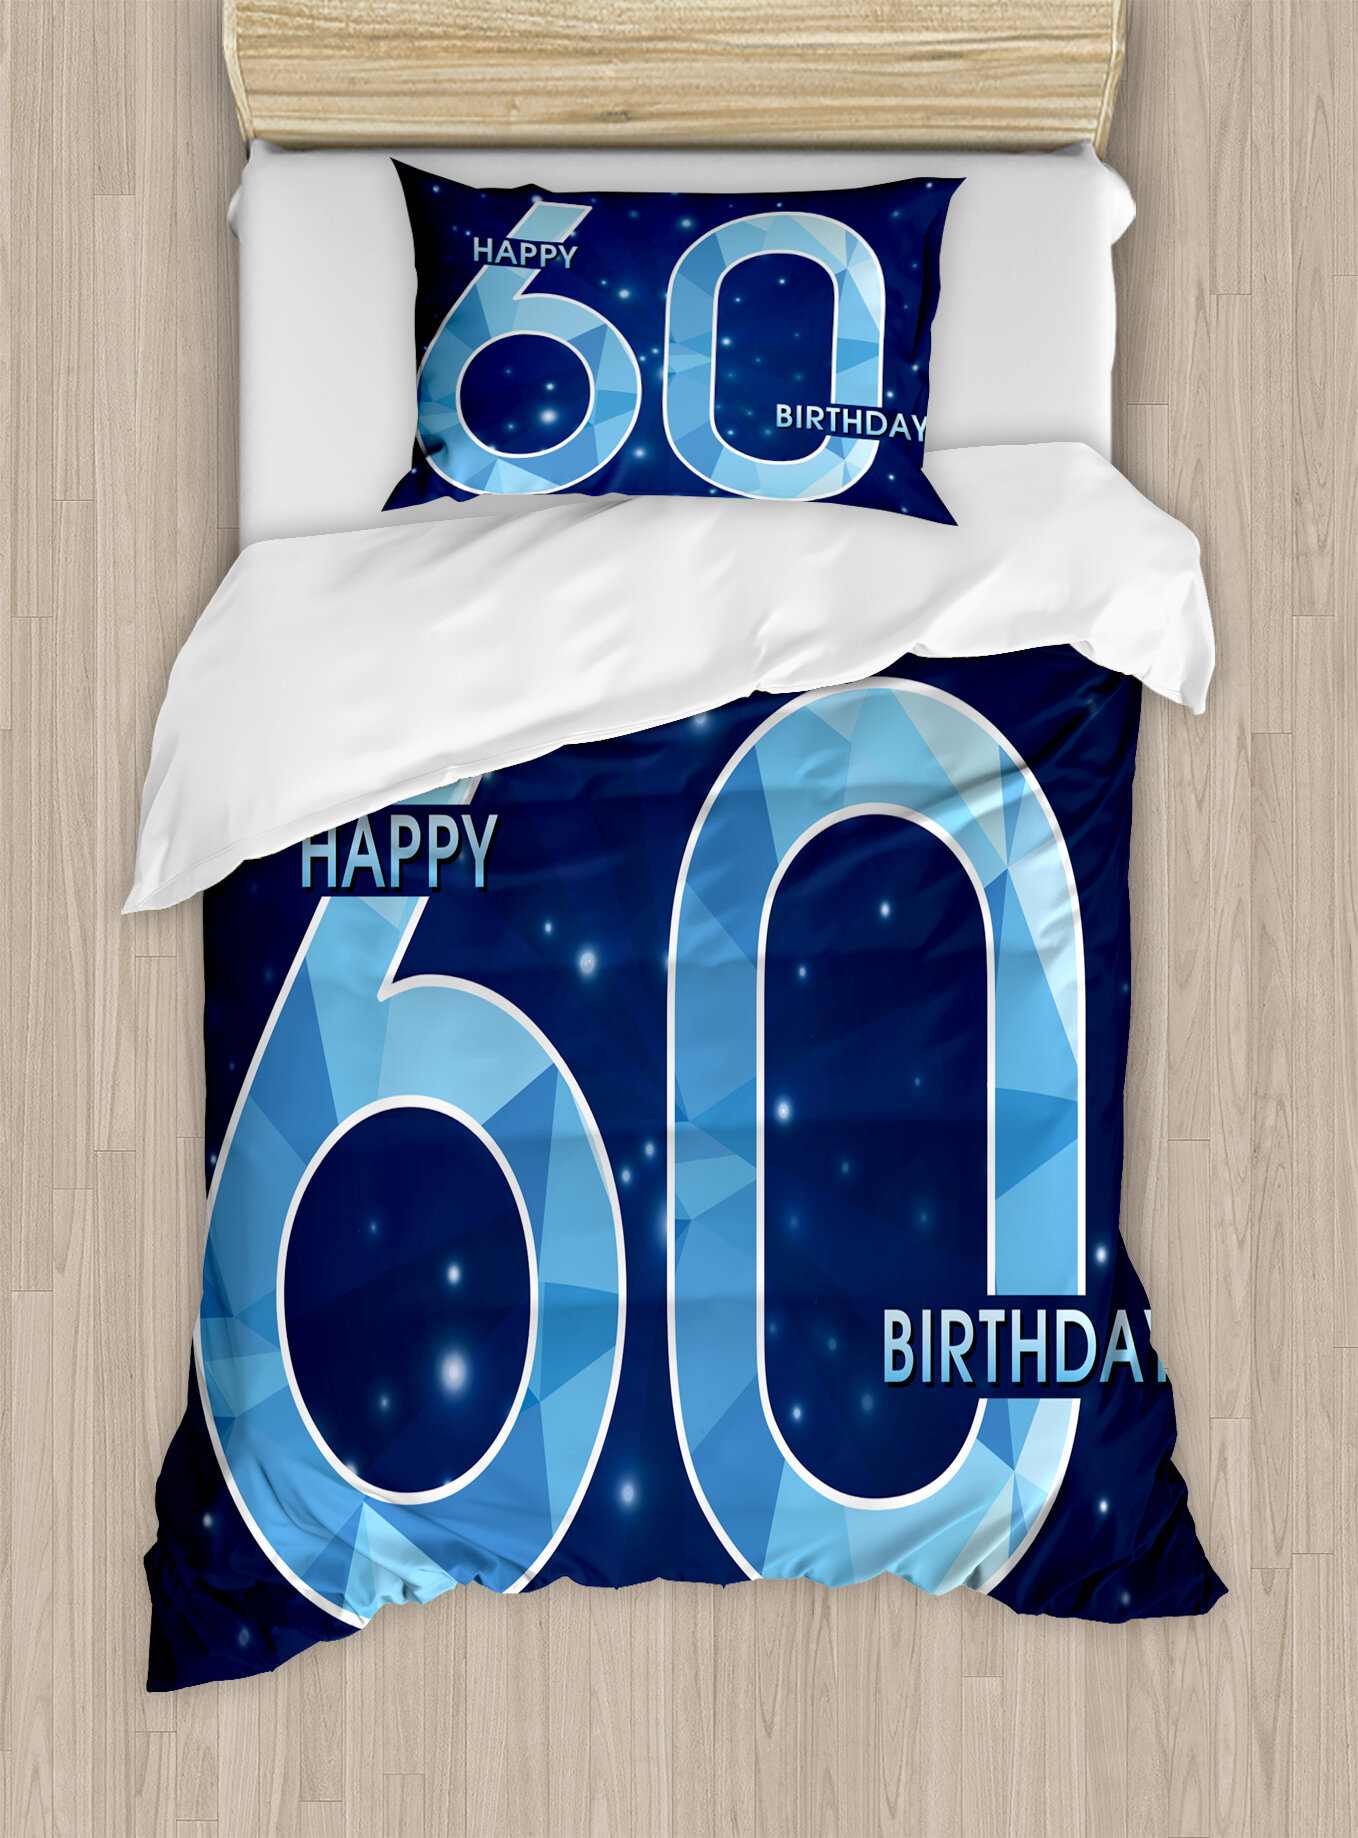 Ambesonne 60th Birthday Decorations Space Theme Stage With Star Like Abstract Details Art Duvet Cover Set